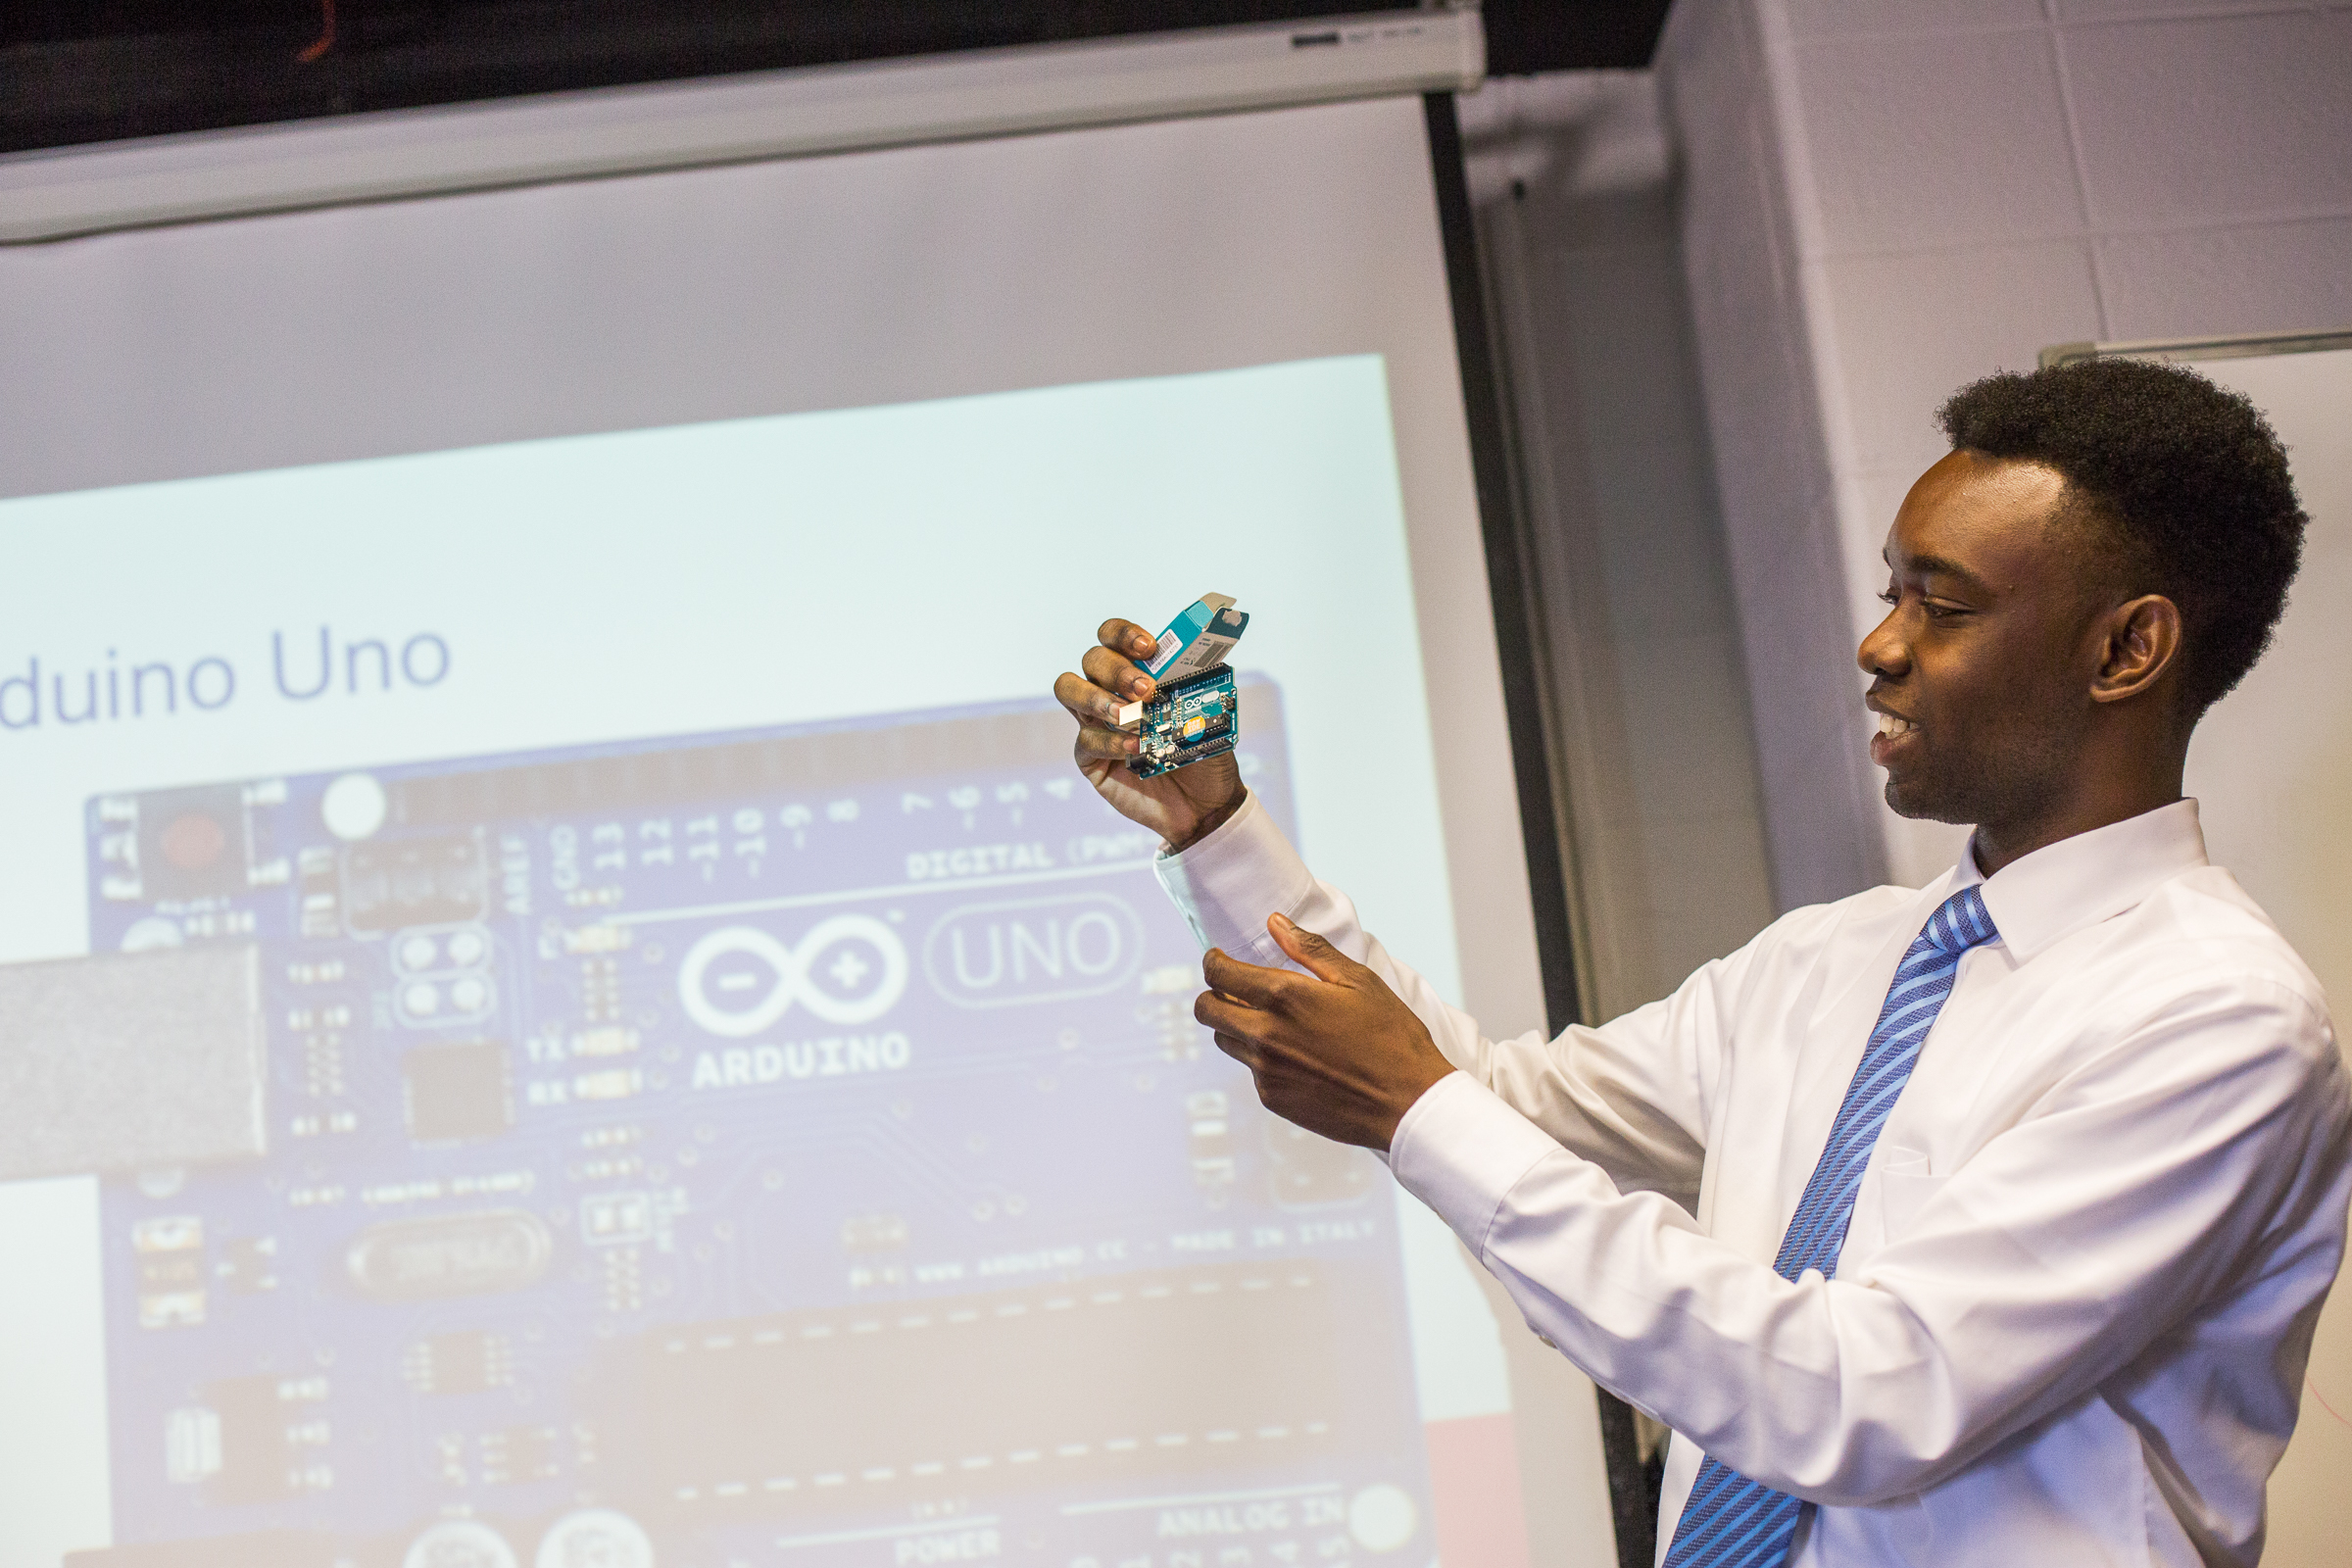 An E.N.G. student holds up an arduino used in his research